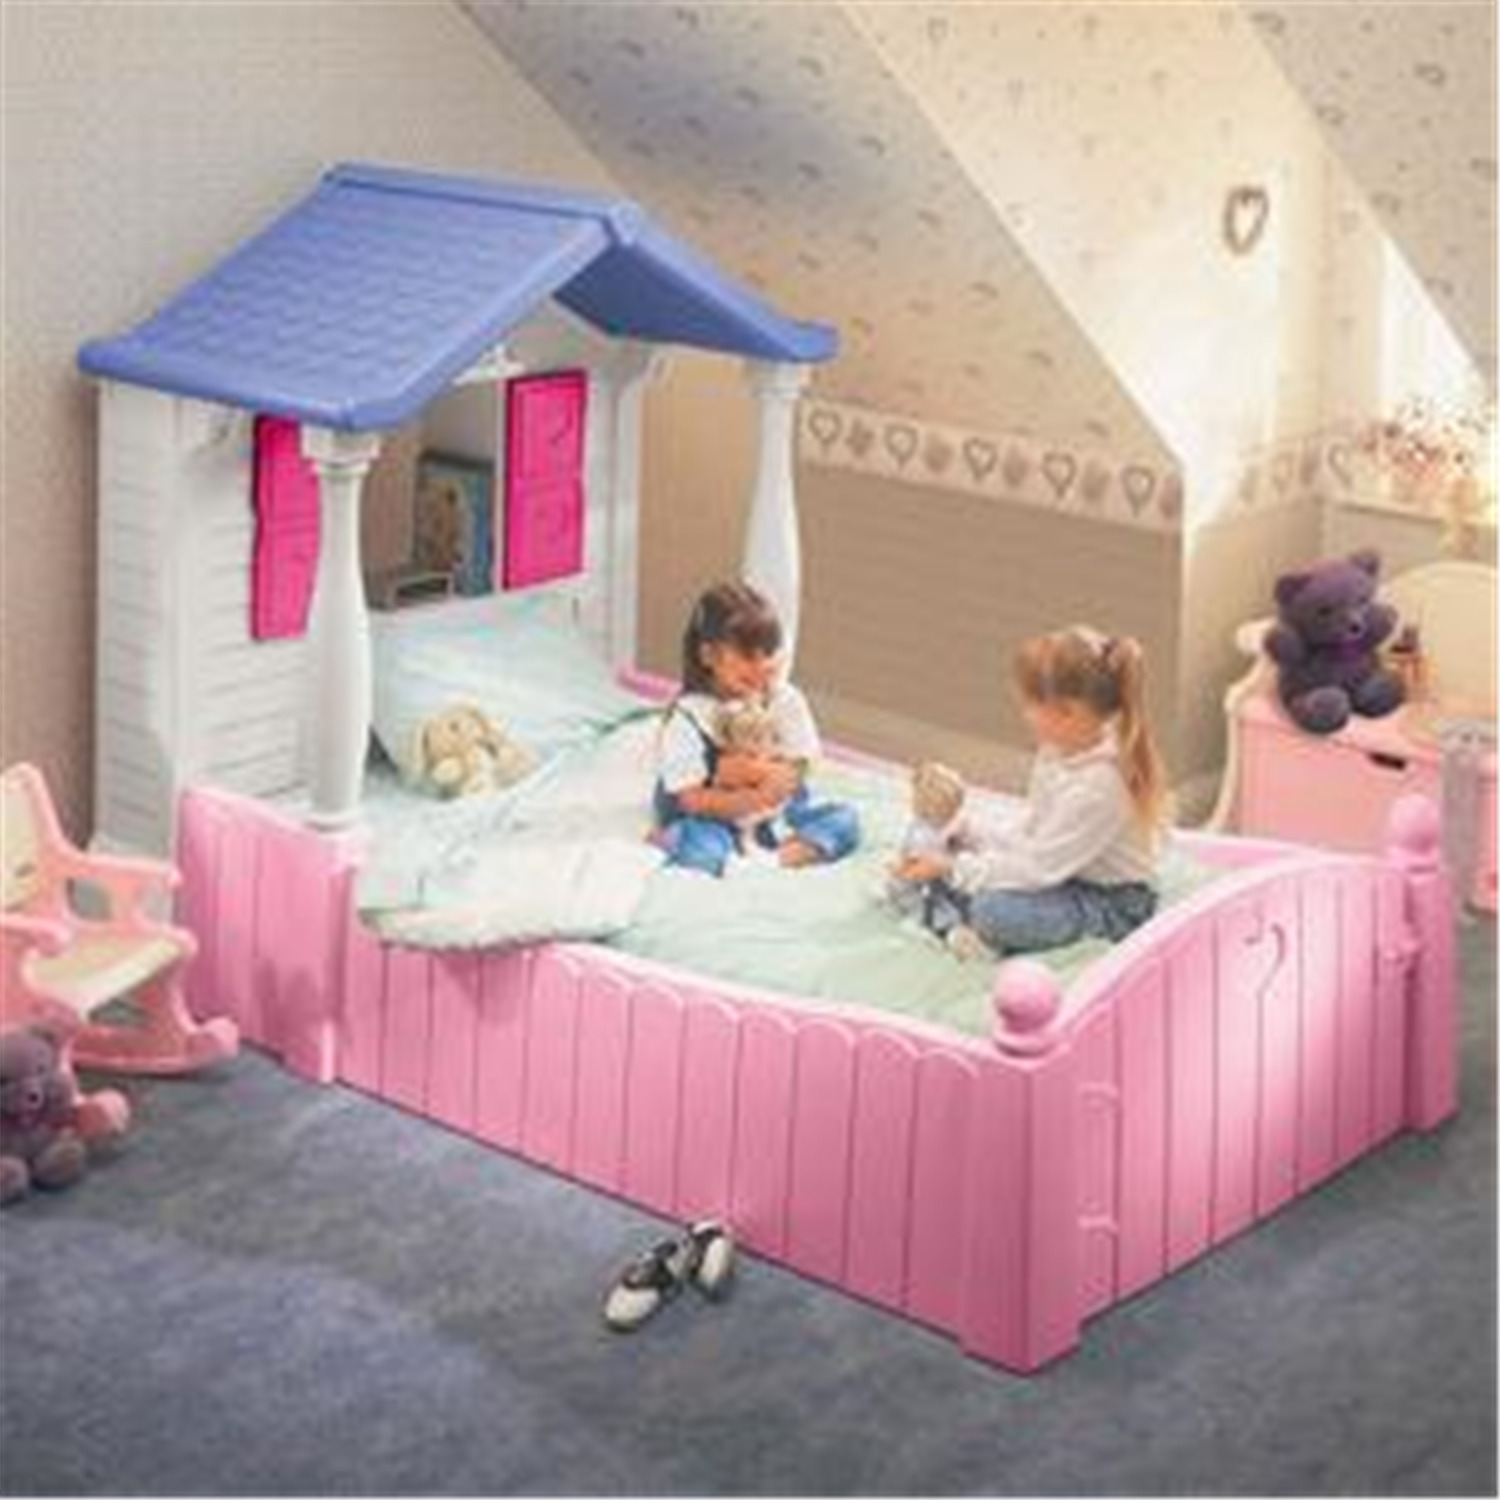 Little Tikes Storybook Cottage Twin Bed By Oj Commerce 661 99